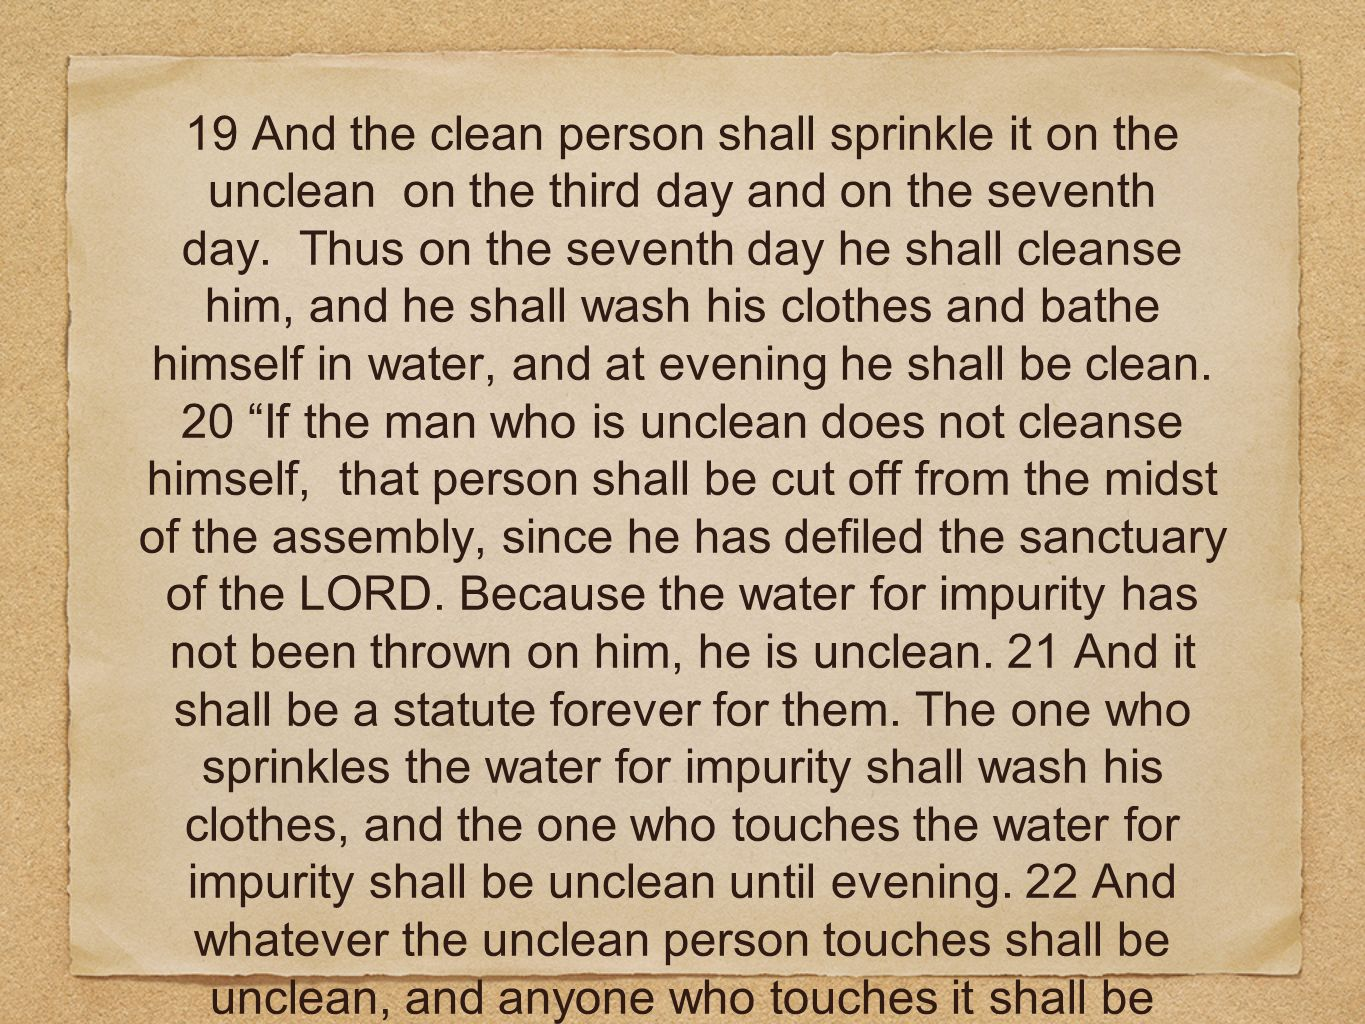 19 And the clean person shall sprinkle it on the unclean on the third day and on the seventh day.